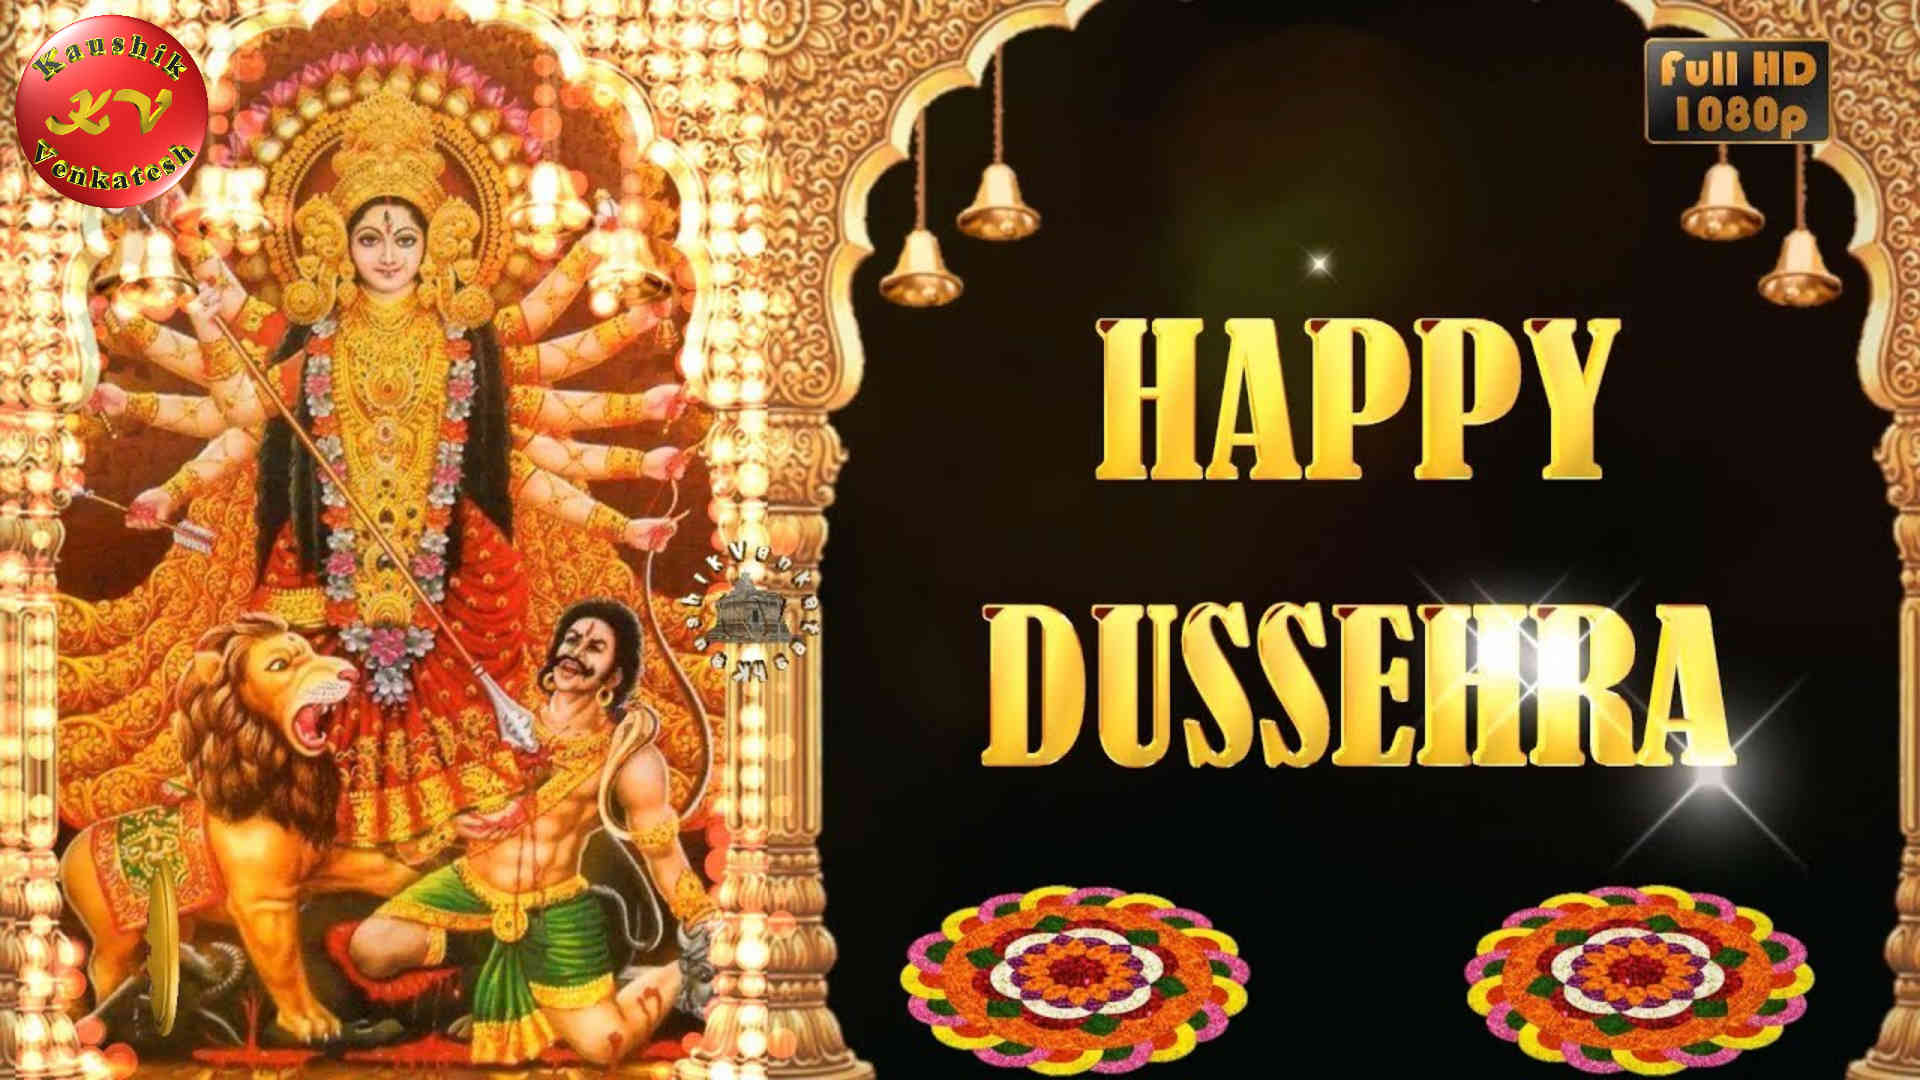 Happy Dussehra Wishes Video